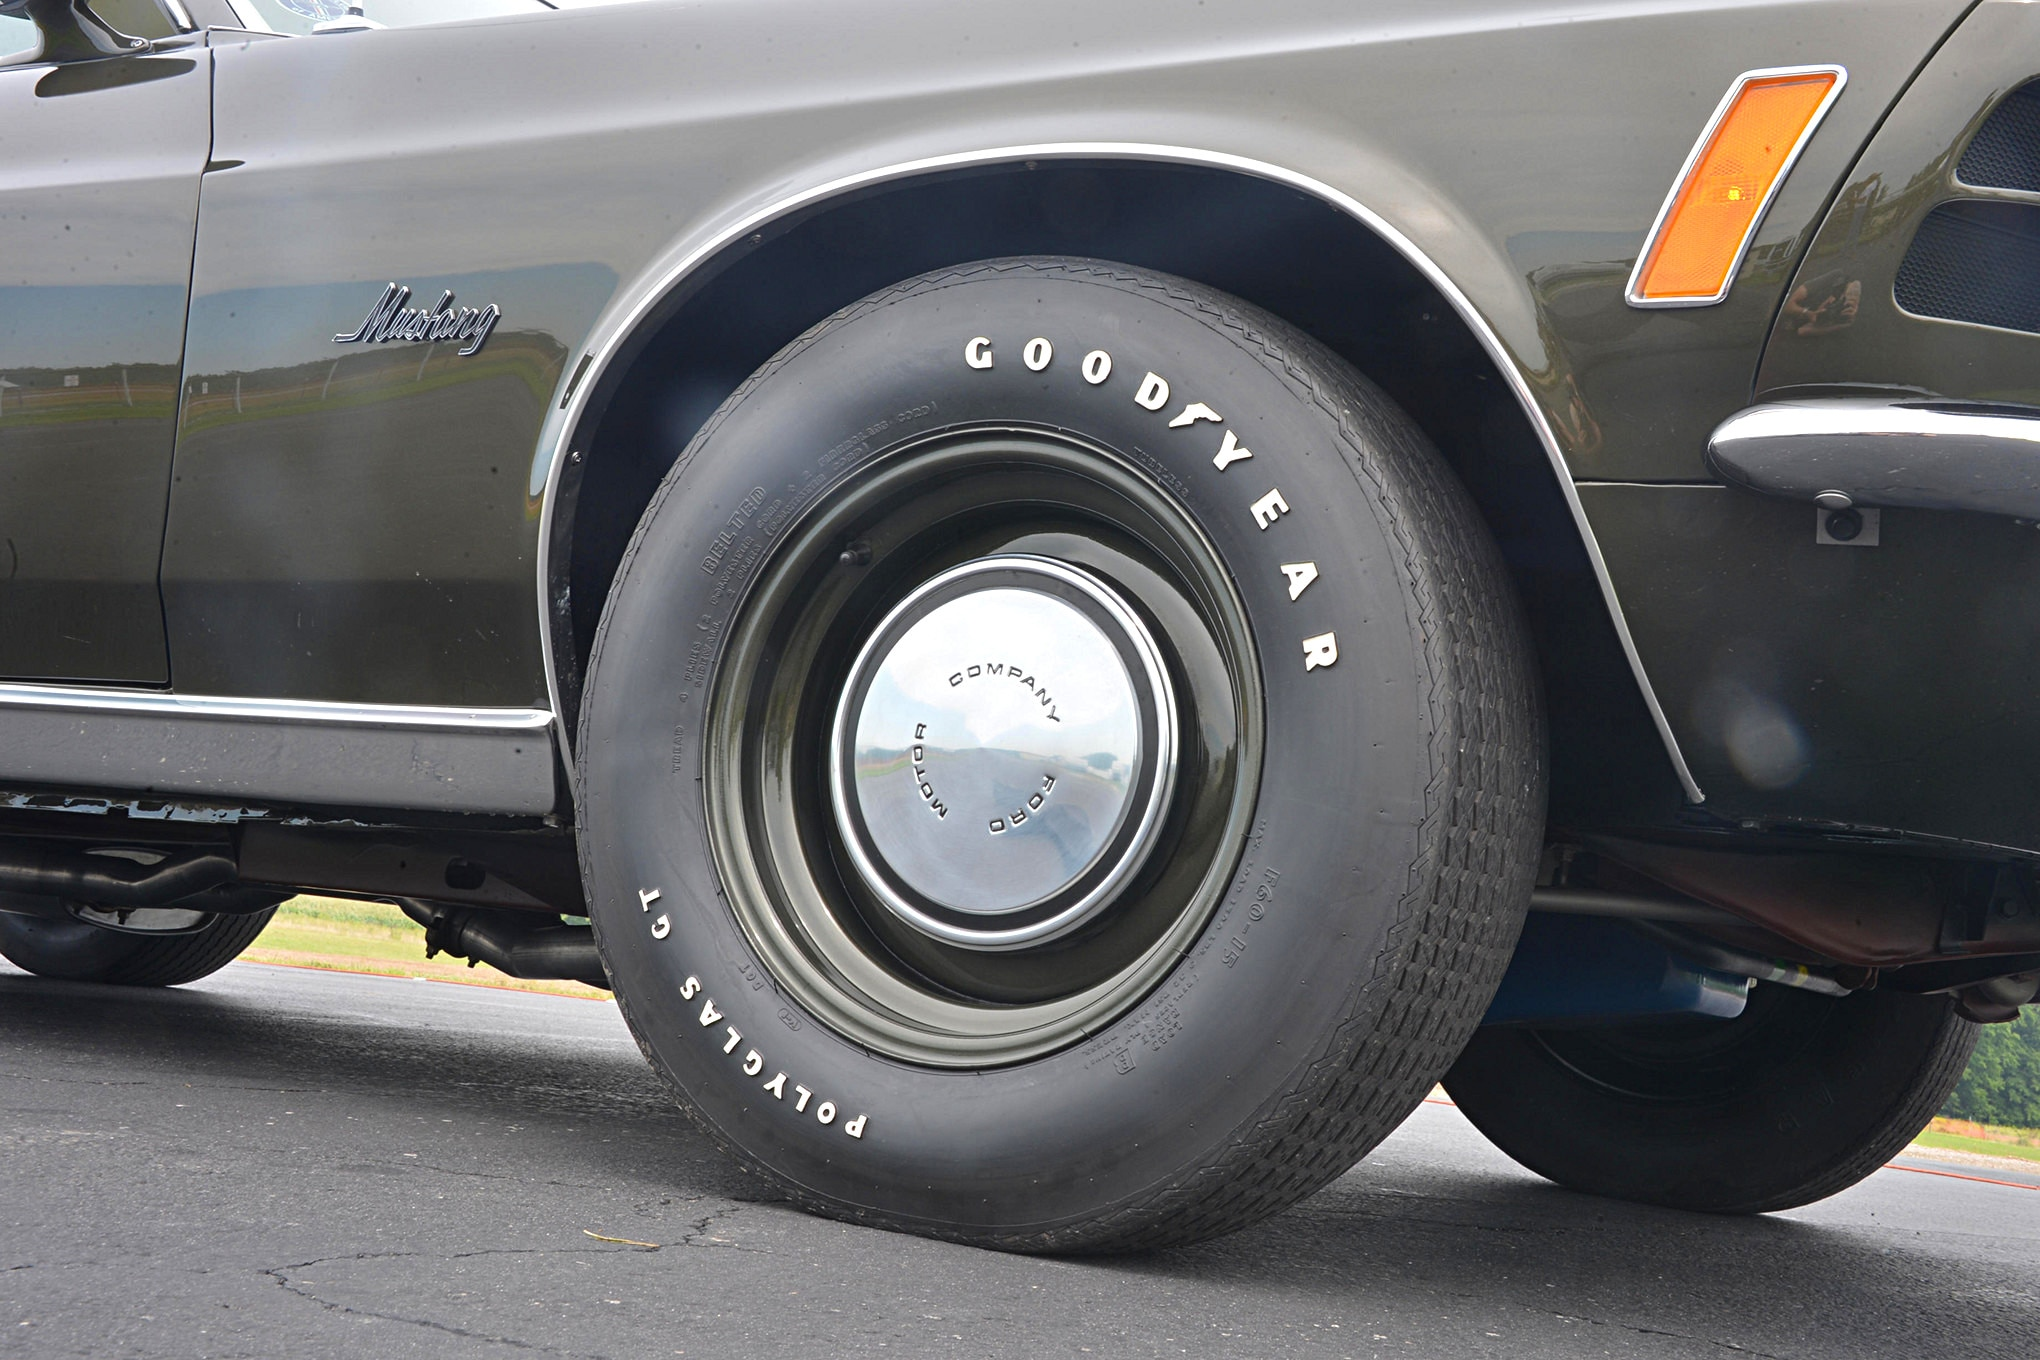 009 1970 CobraJet Fastback GoodieA